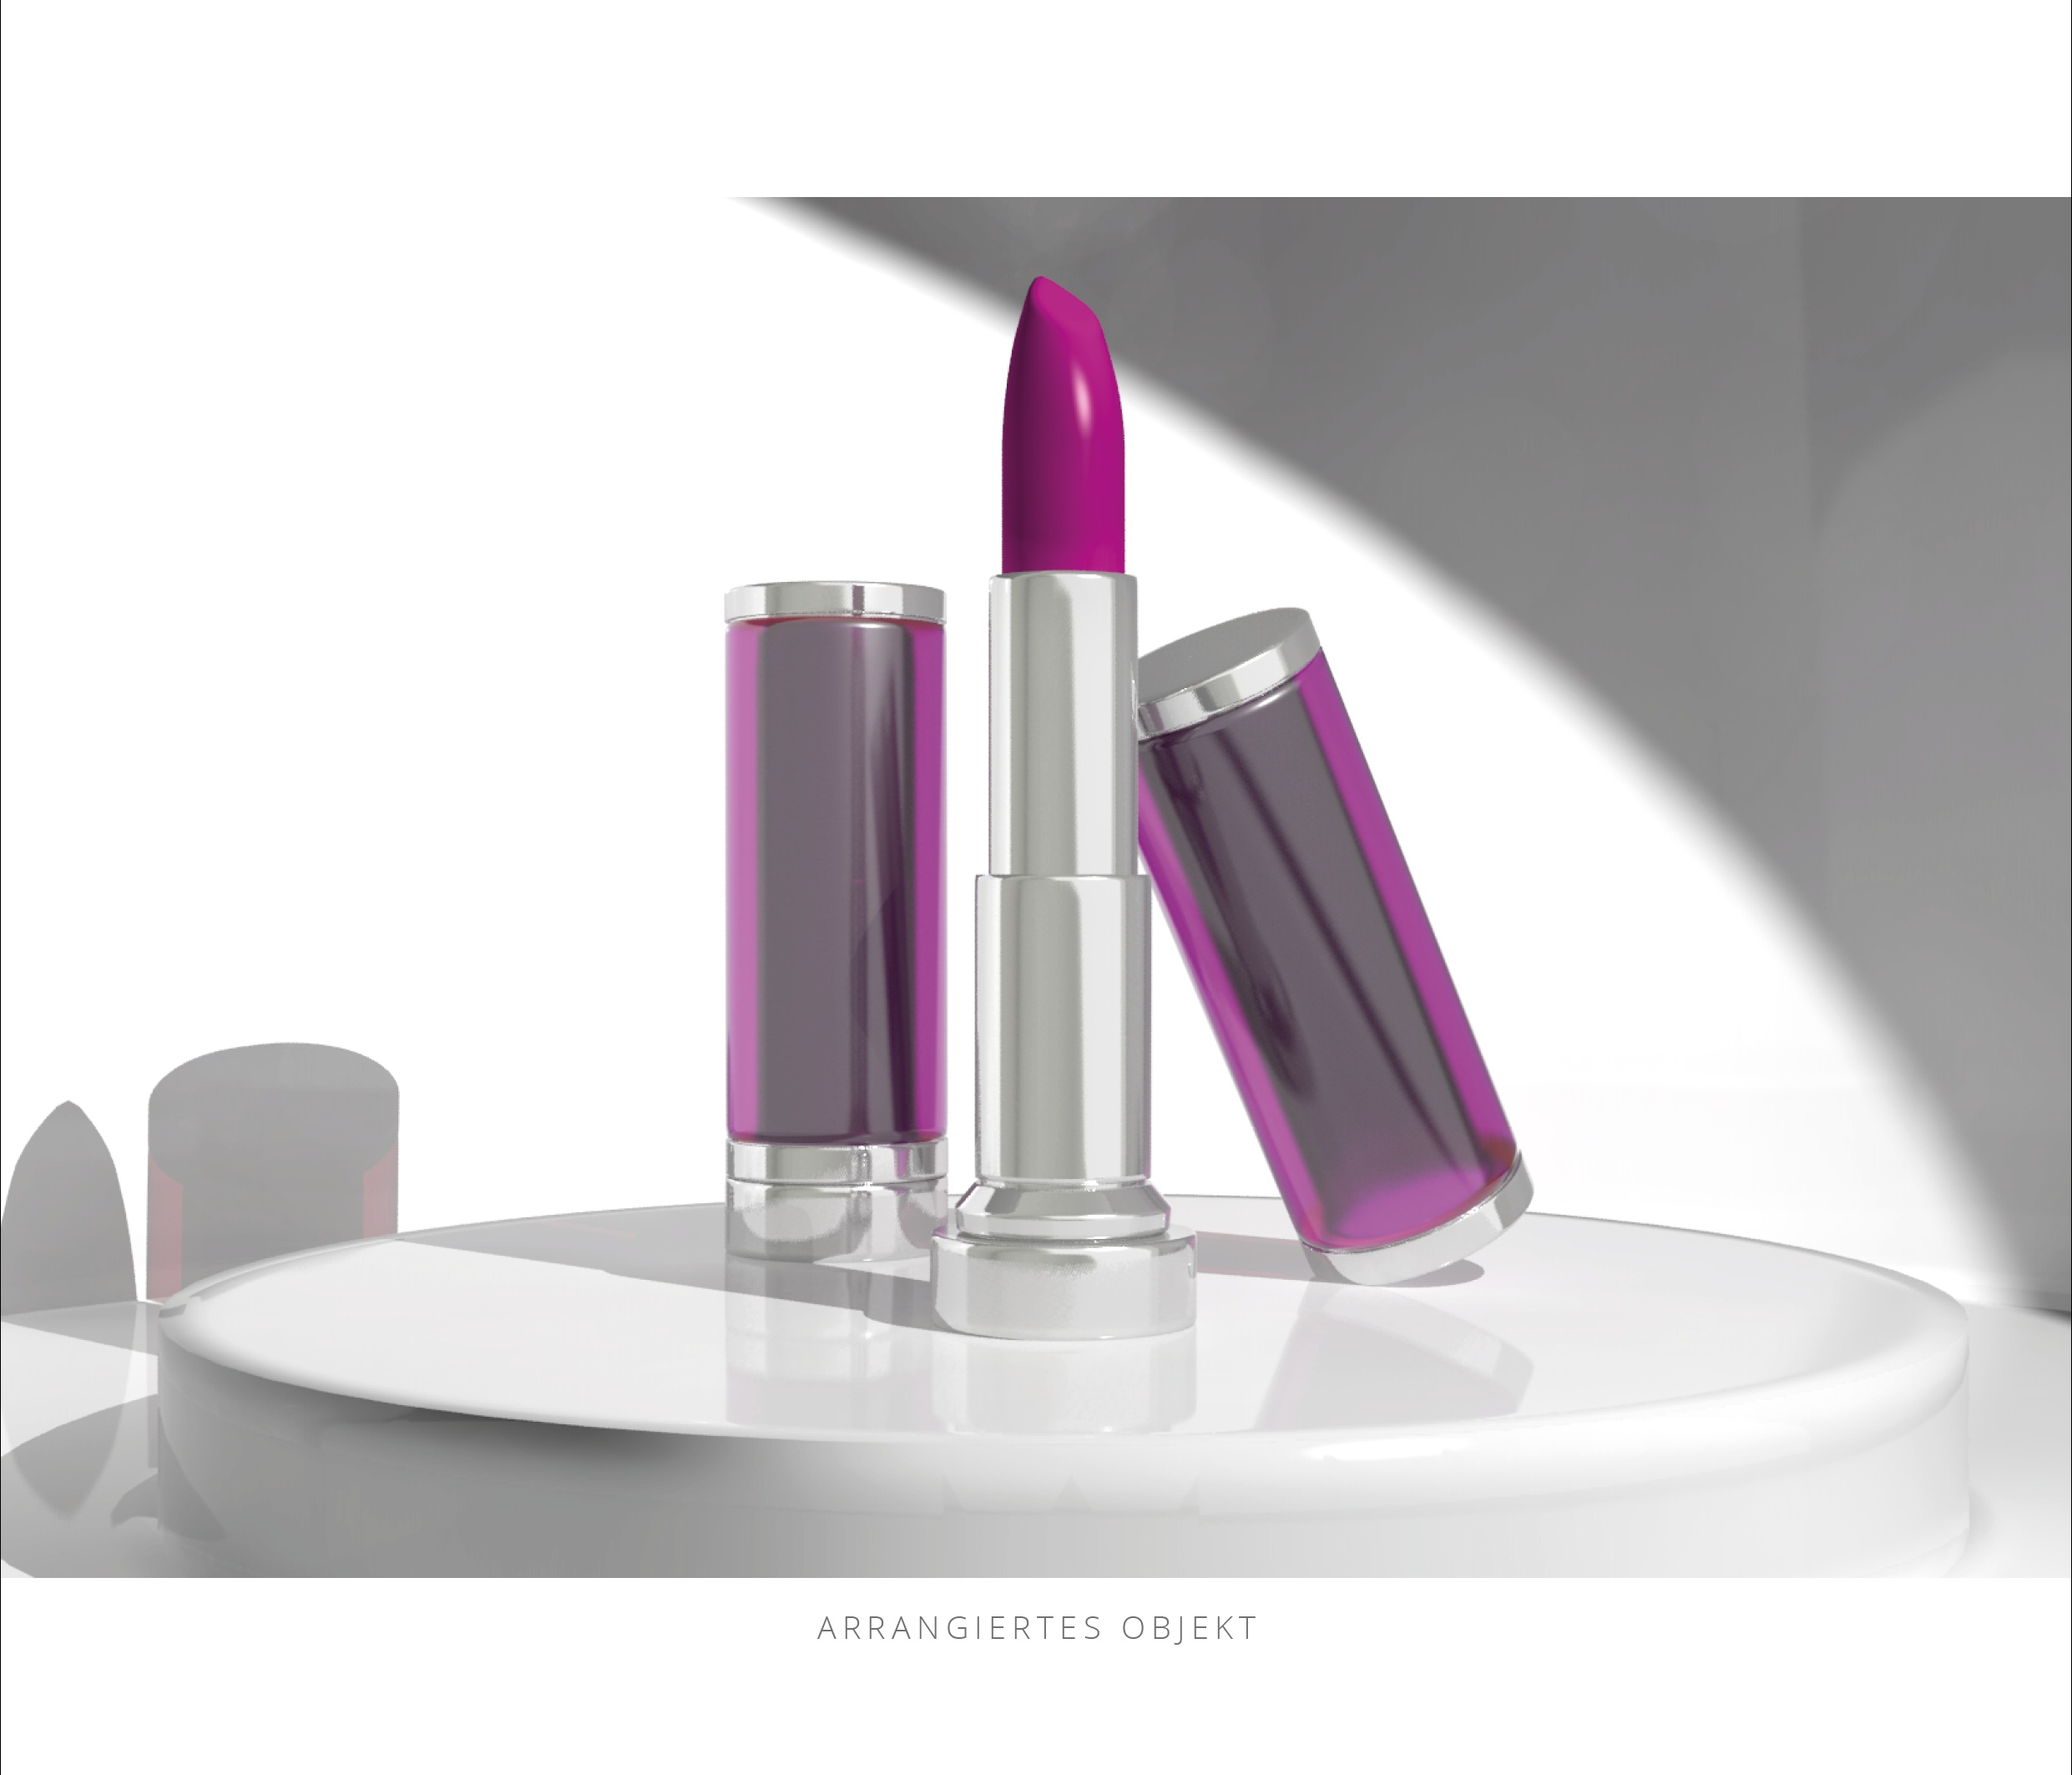 Lippenstift 3D Konstruktion Arrangement